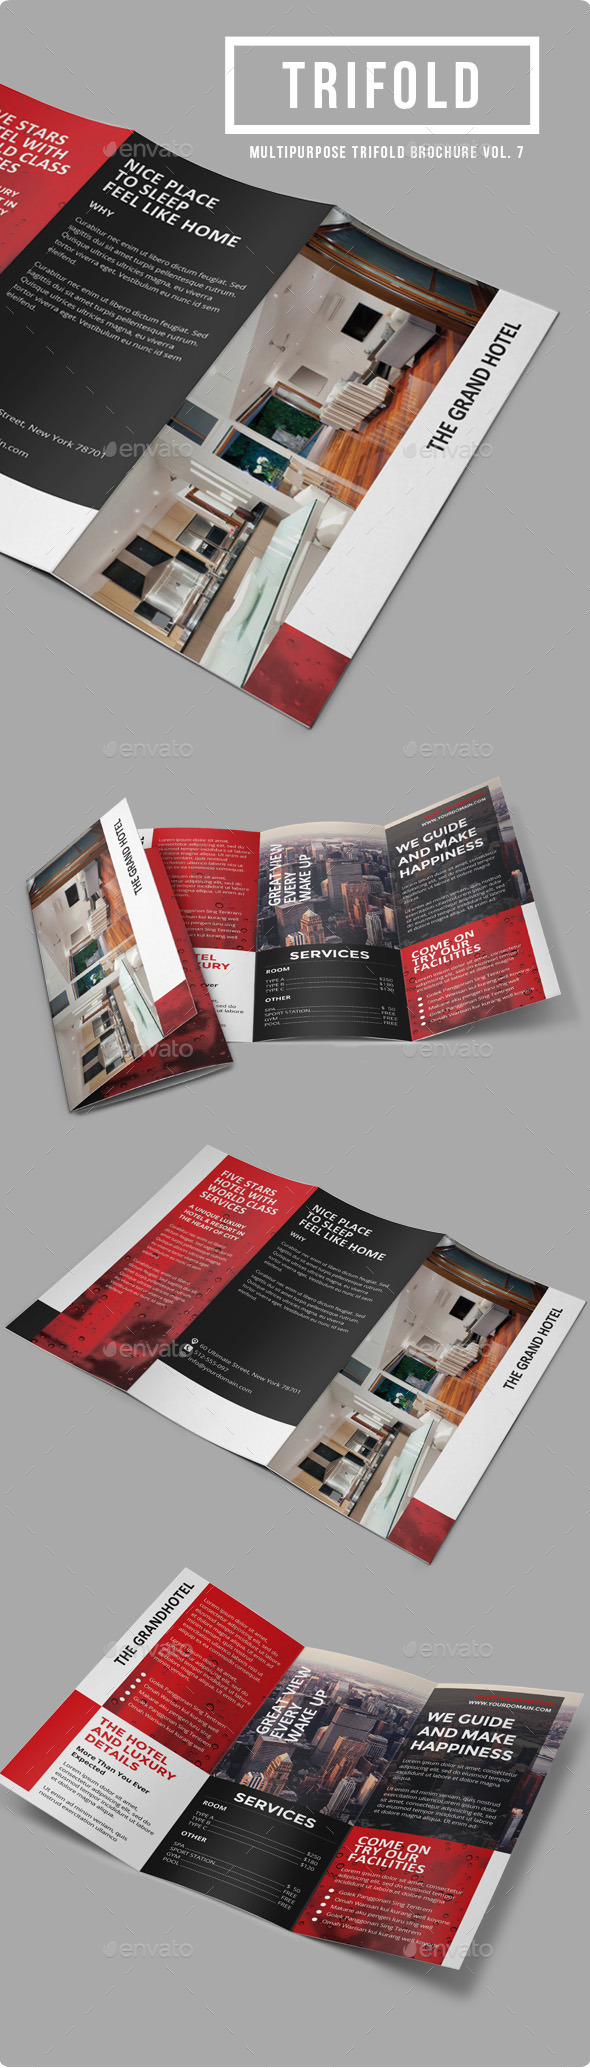 Sun Hotel - Multipurpose Trifold Brochure Vol. 7 - Informational Brochures